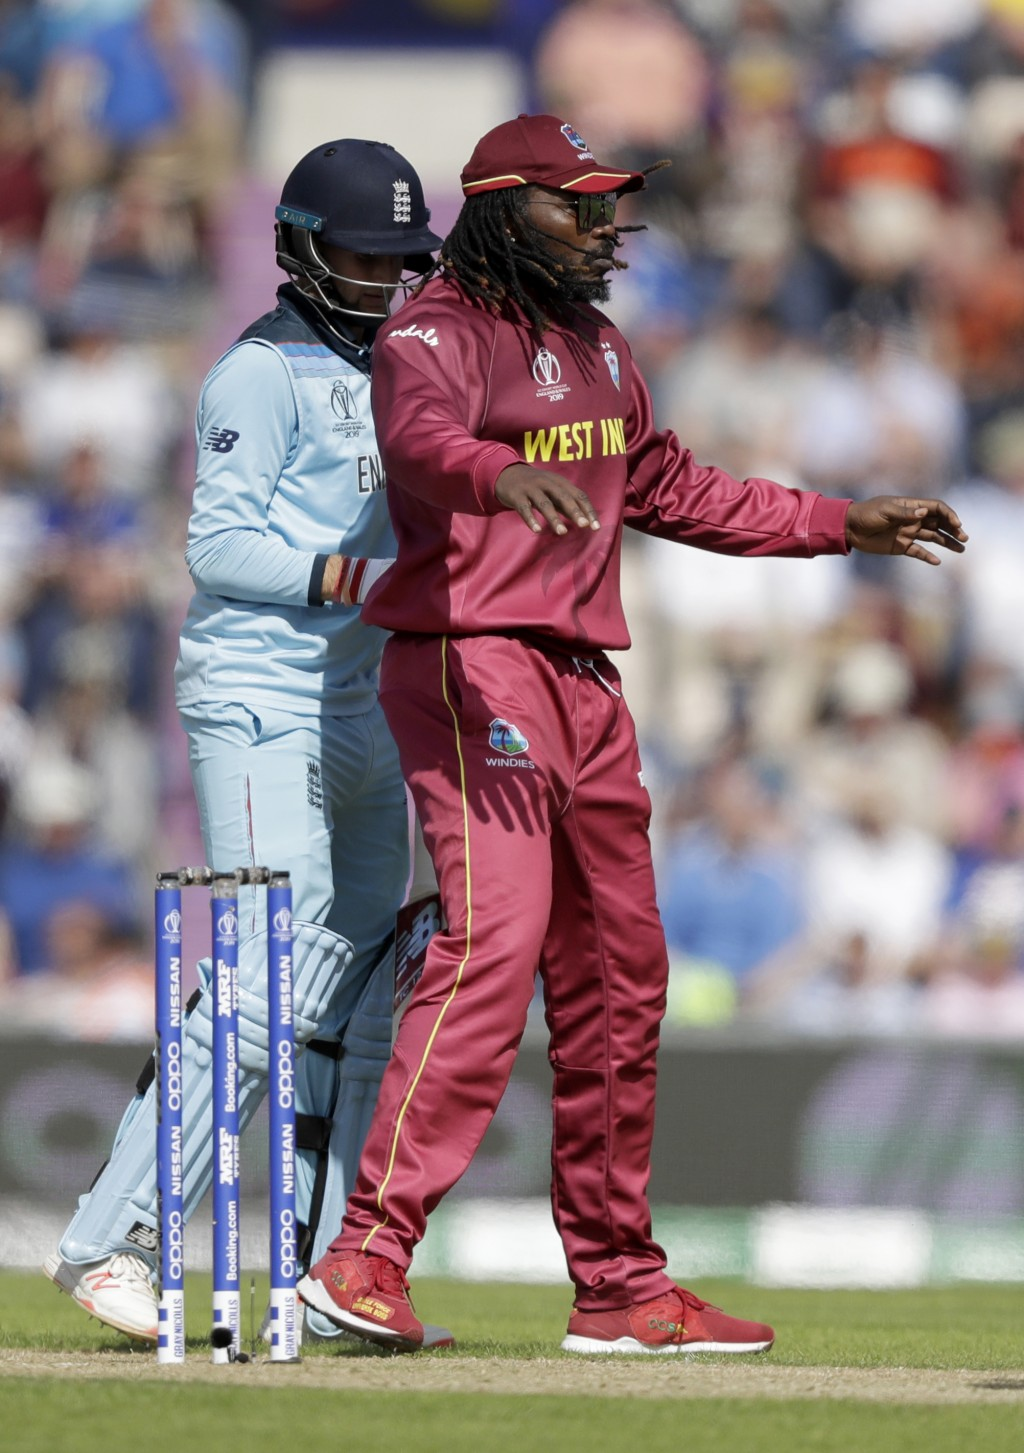 West Indies' Chris Gayle, right, jokingly blocks the way of England's Joe Root during one of his spin bowling overs during the Cricket World Cup match...